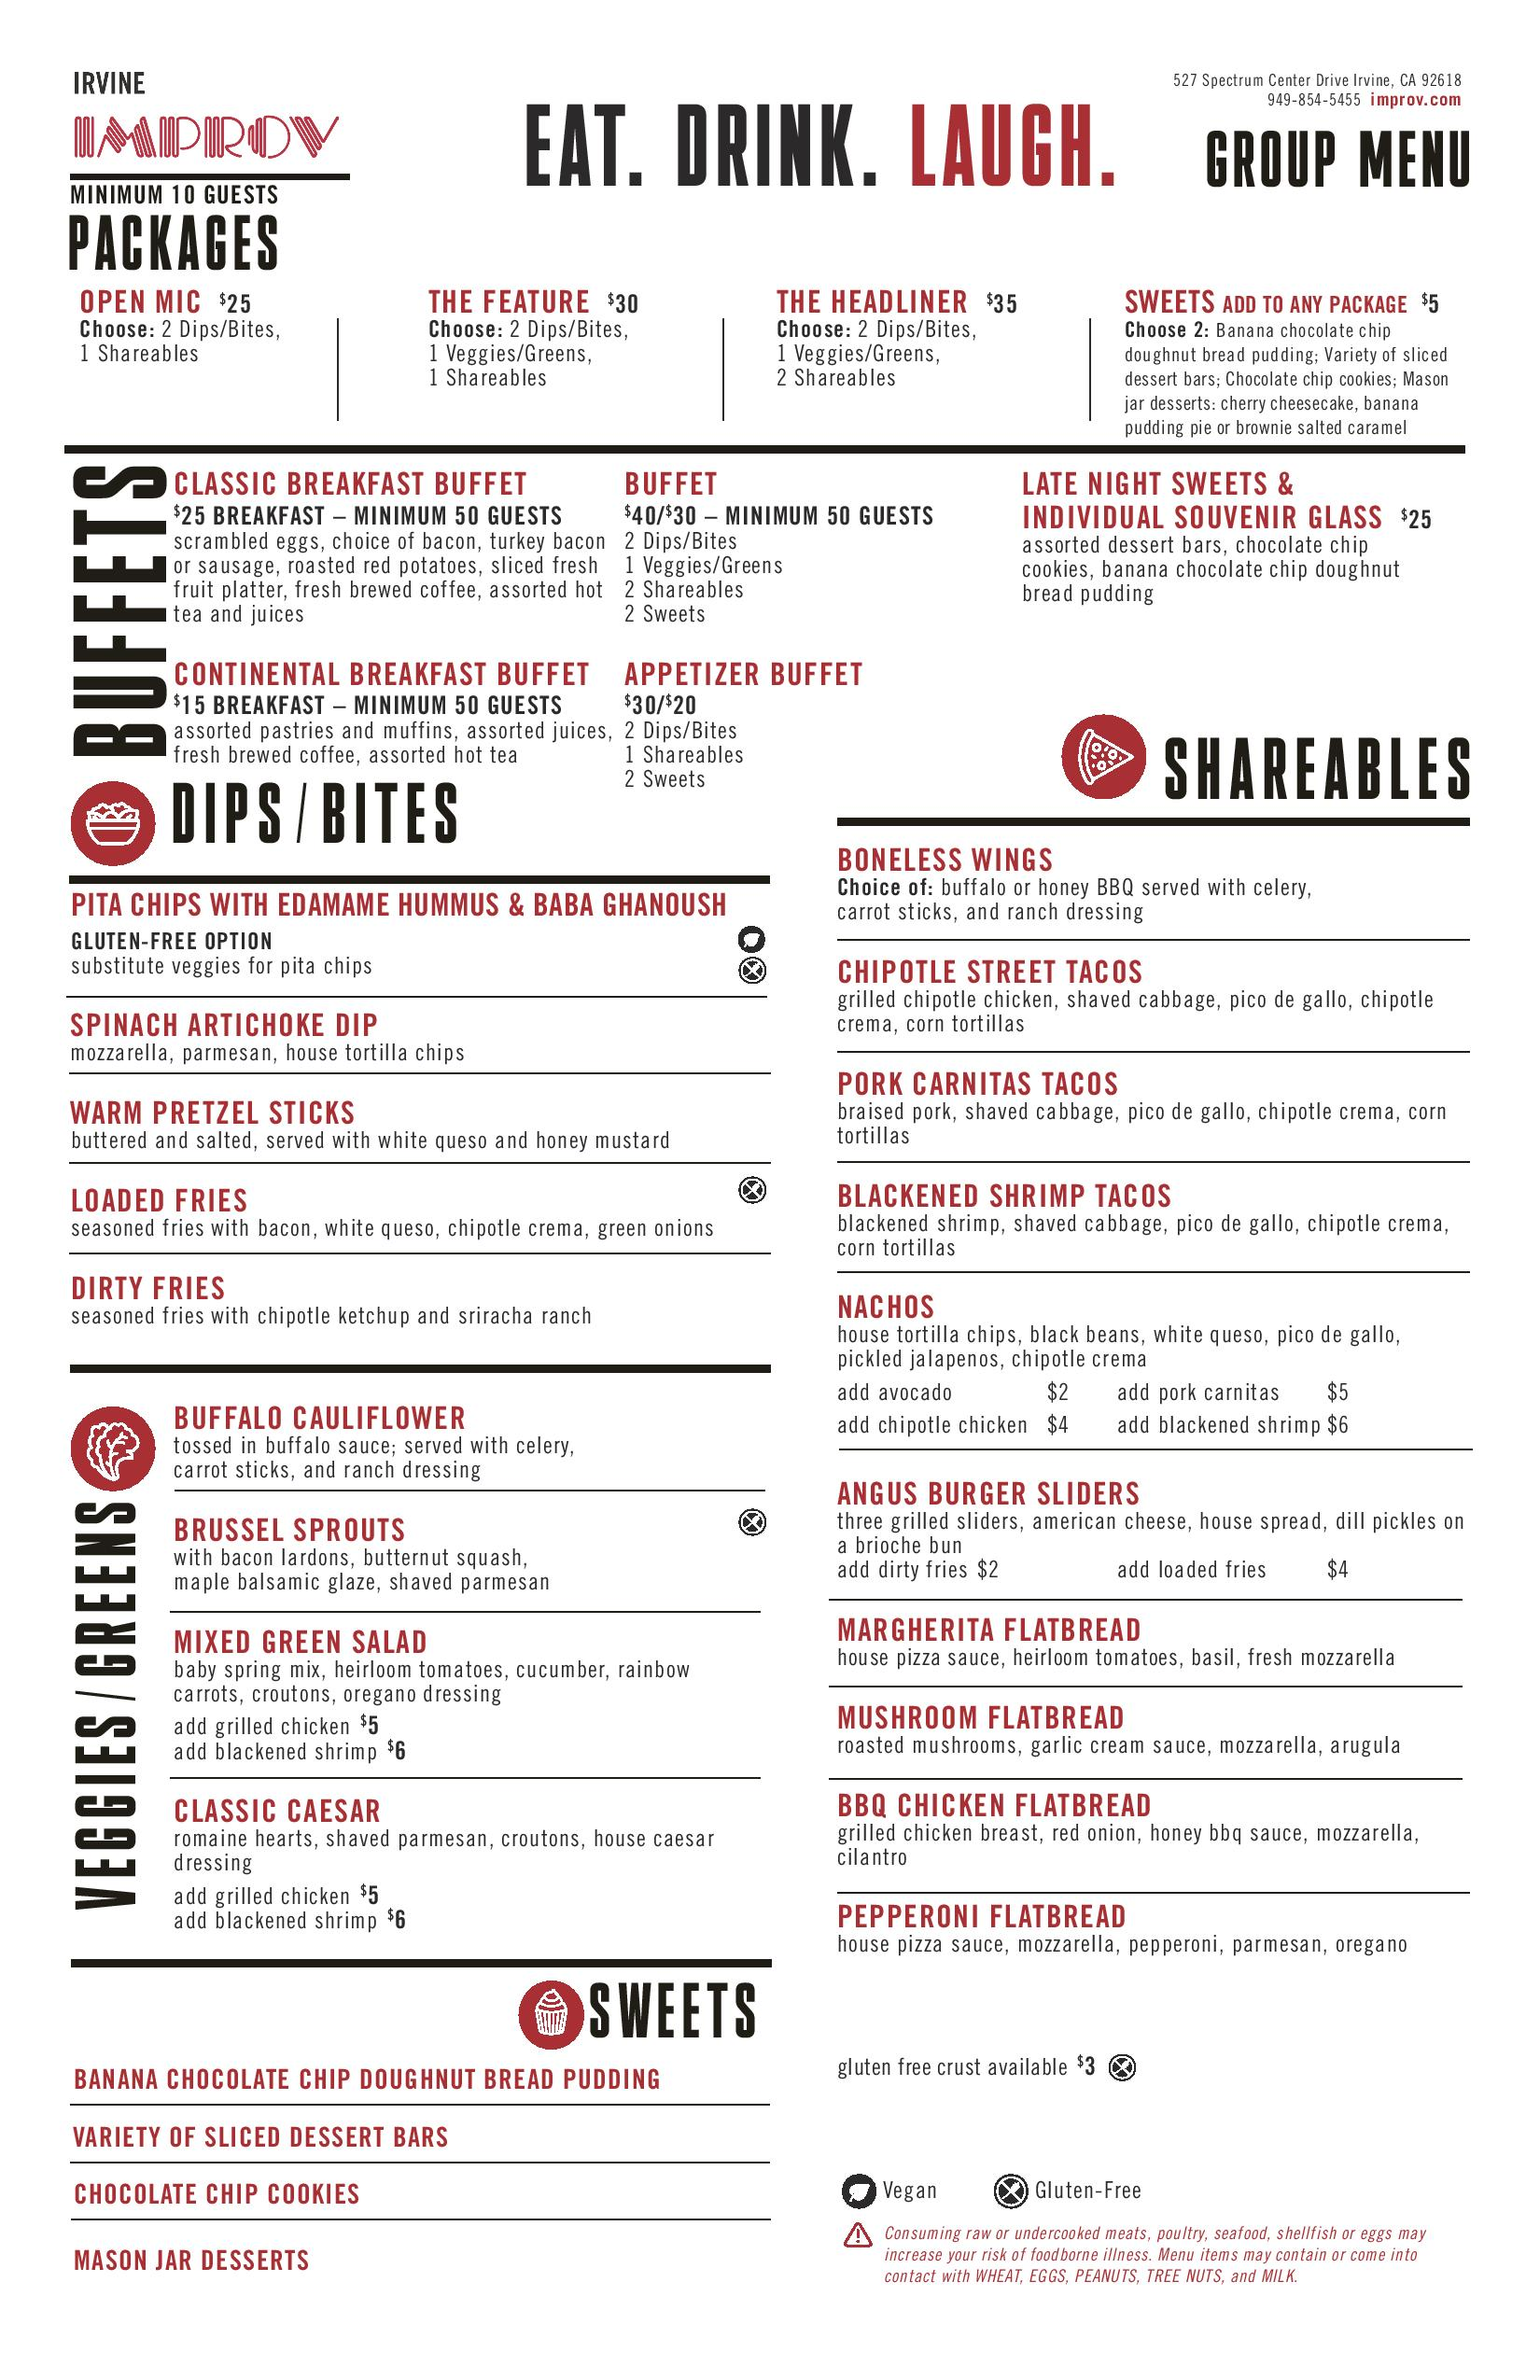 Irvine Improv Group Menu